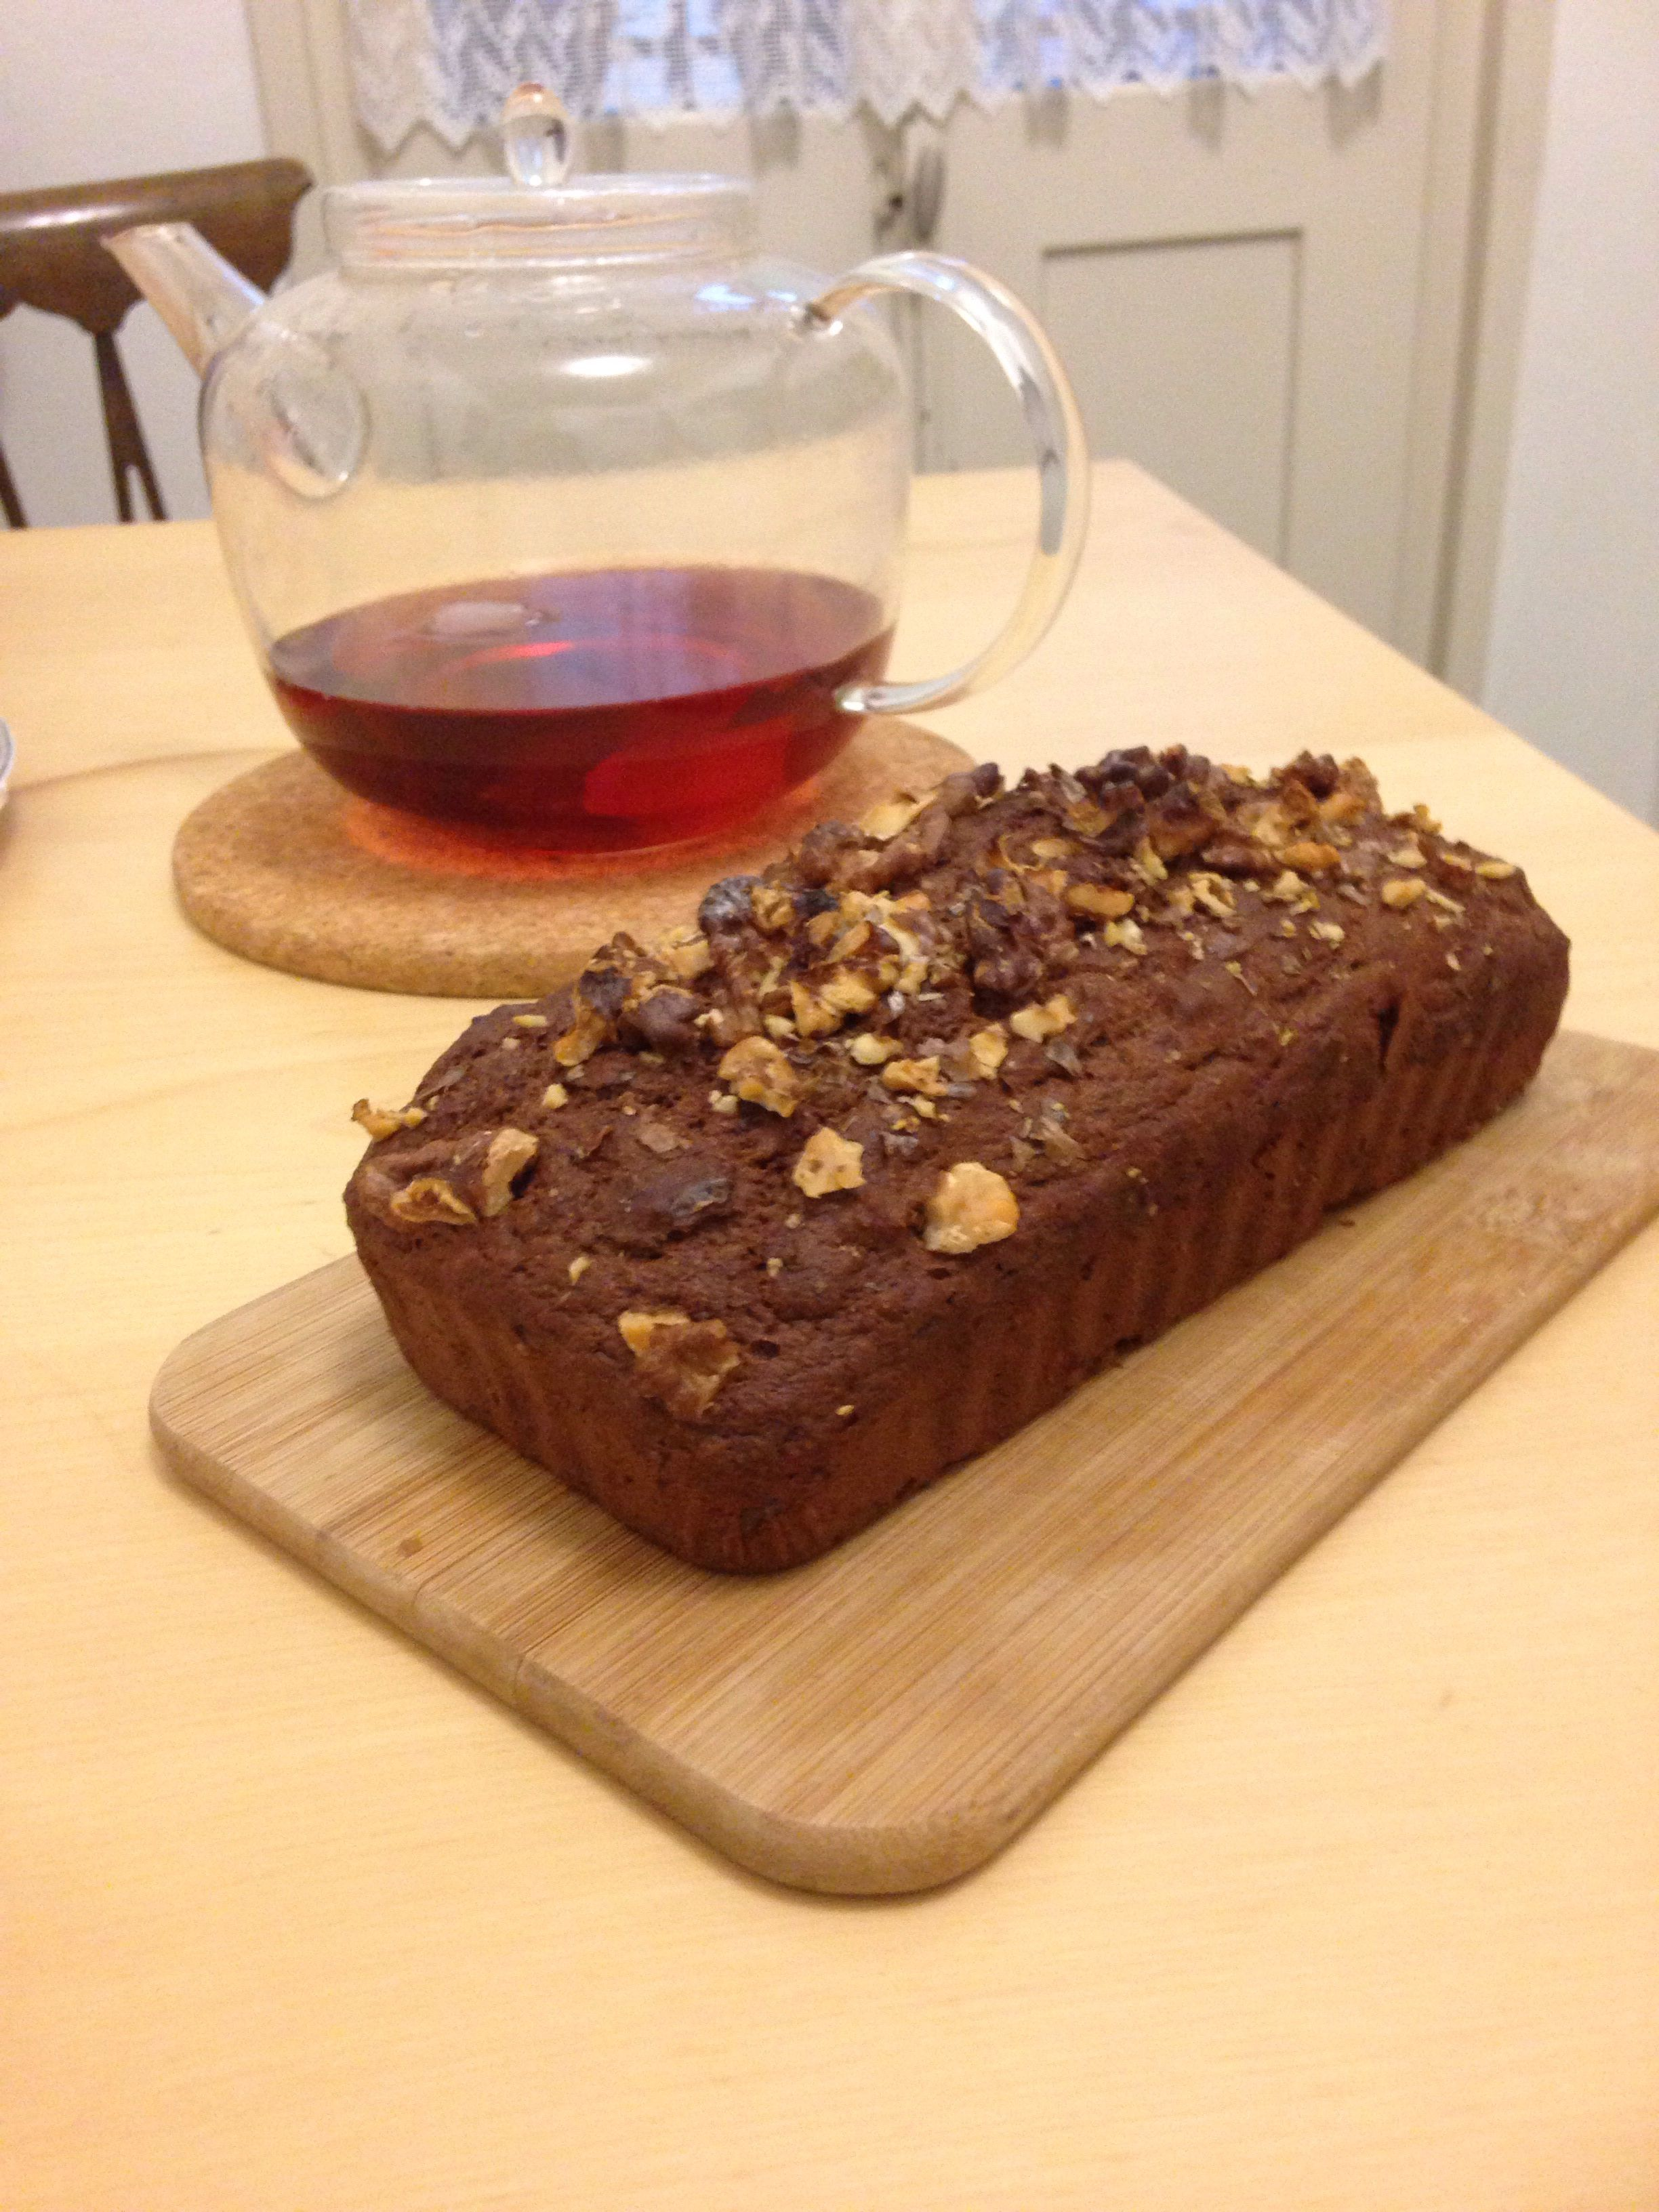 Healthy banana bread made using bbc good food recipe i swapped the healthy banana bread made using bbc good food recipe i swapped the syrup for nutella but you could hardly taste it still banana breadm forumfinder Gallery